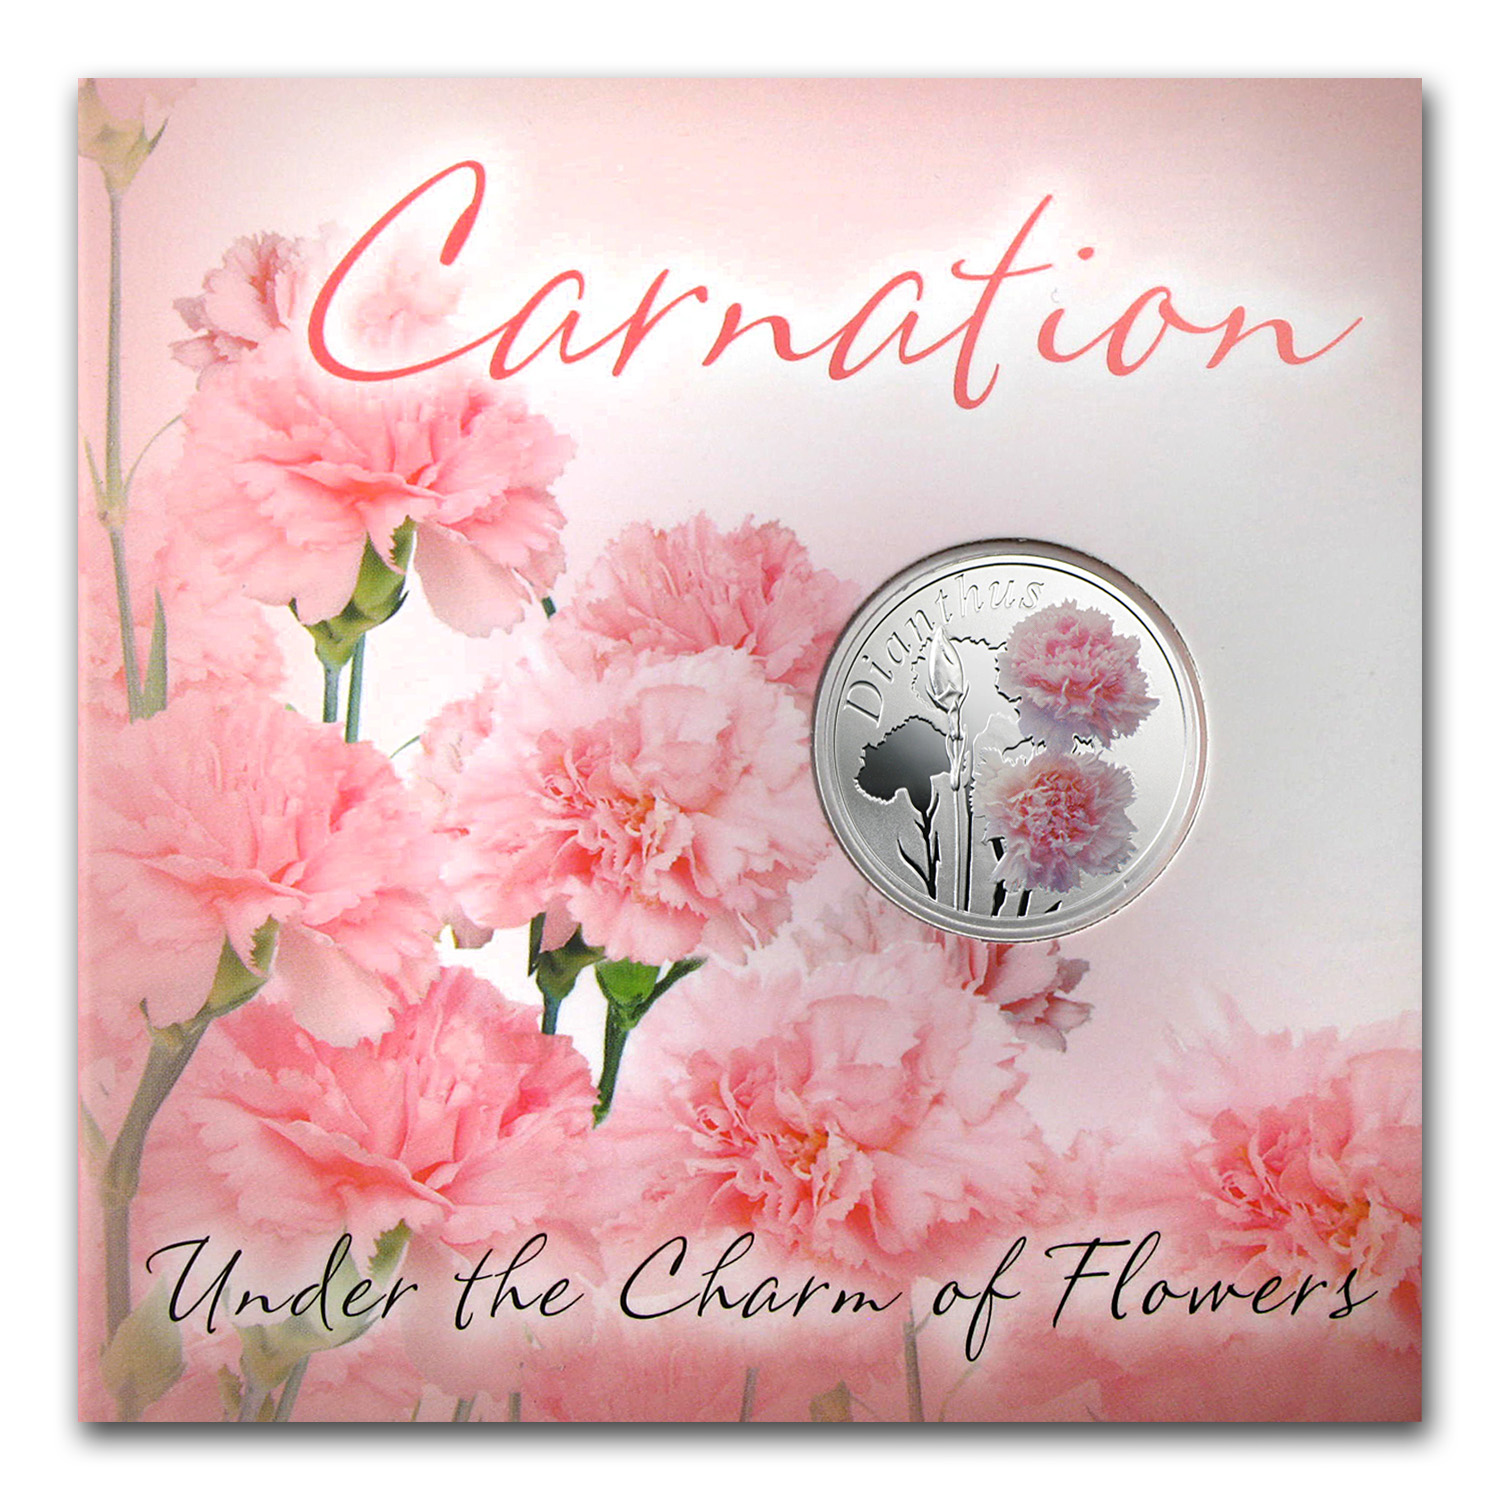 2013 Belarus Silver Proof Under the Charm of Flowers Carnation